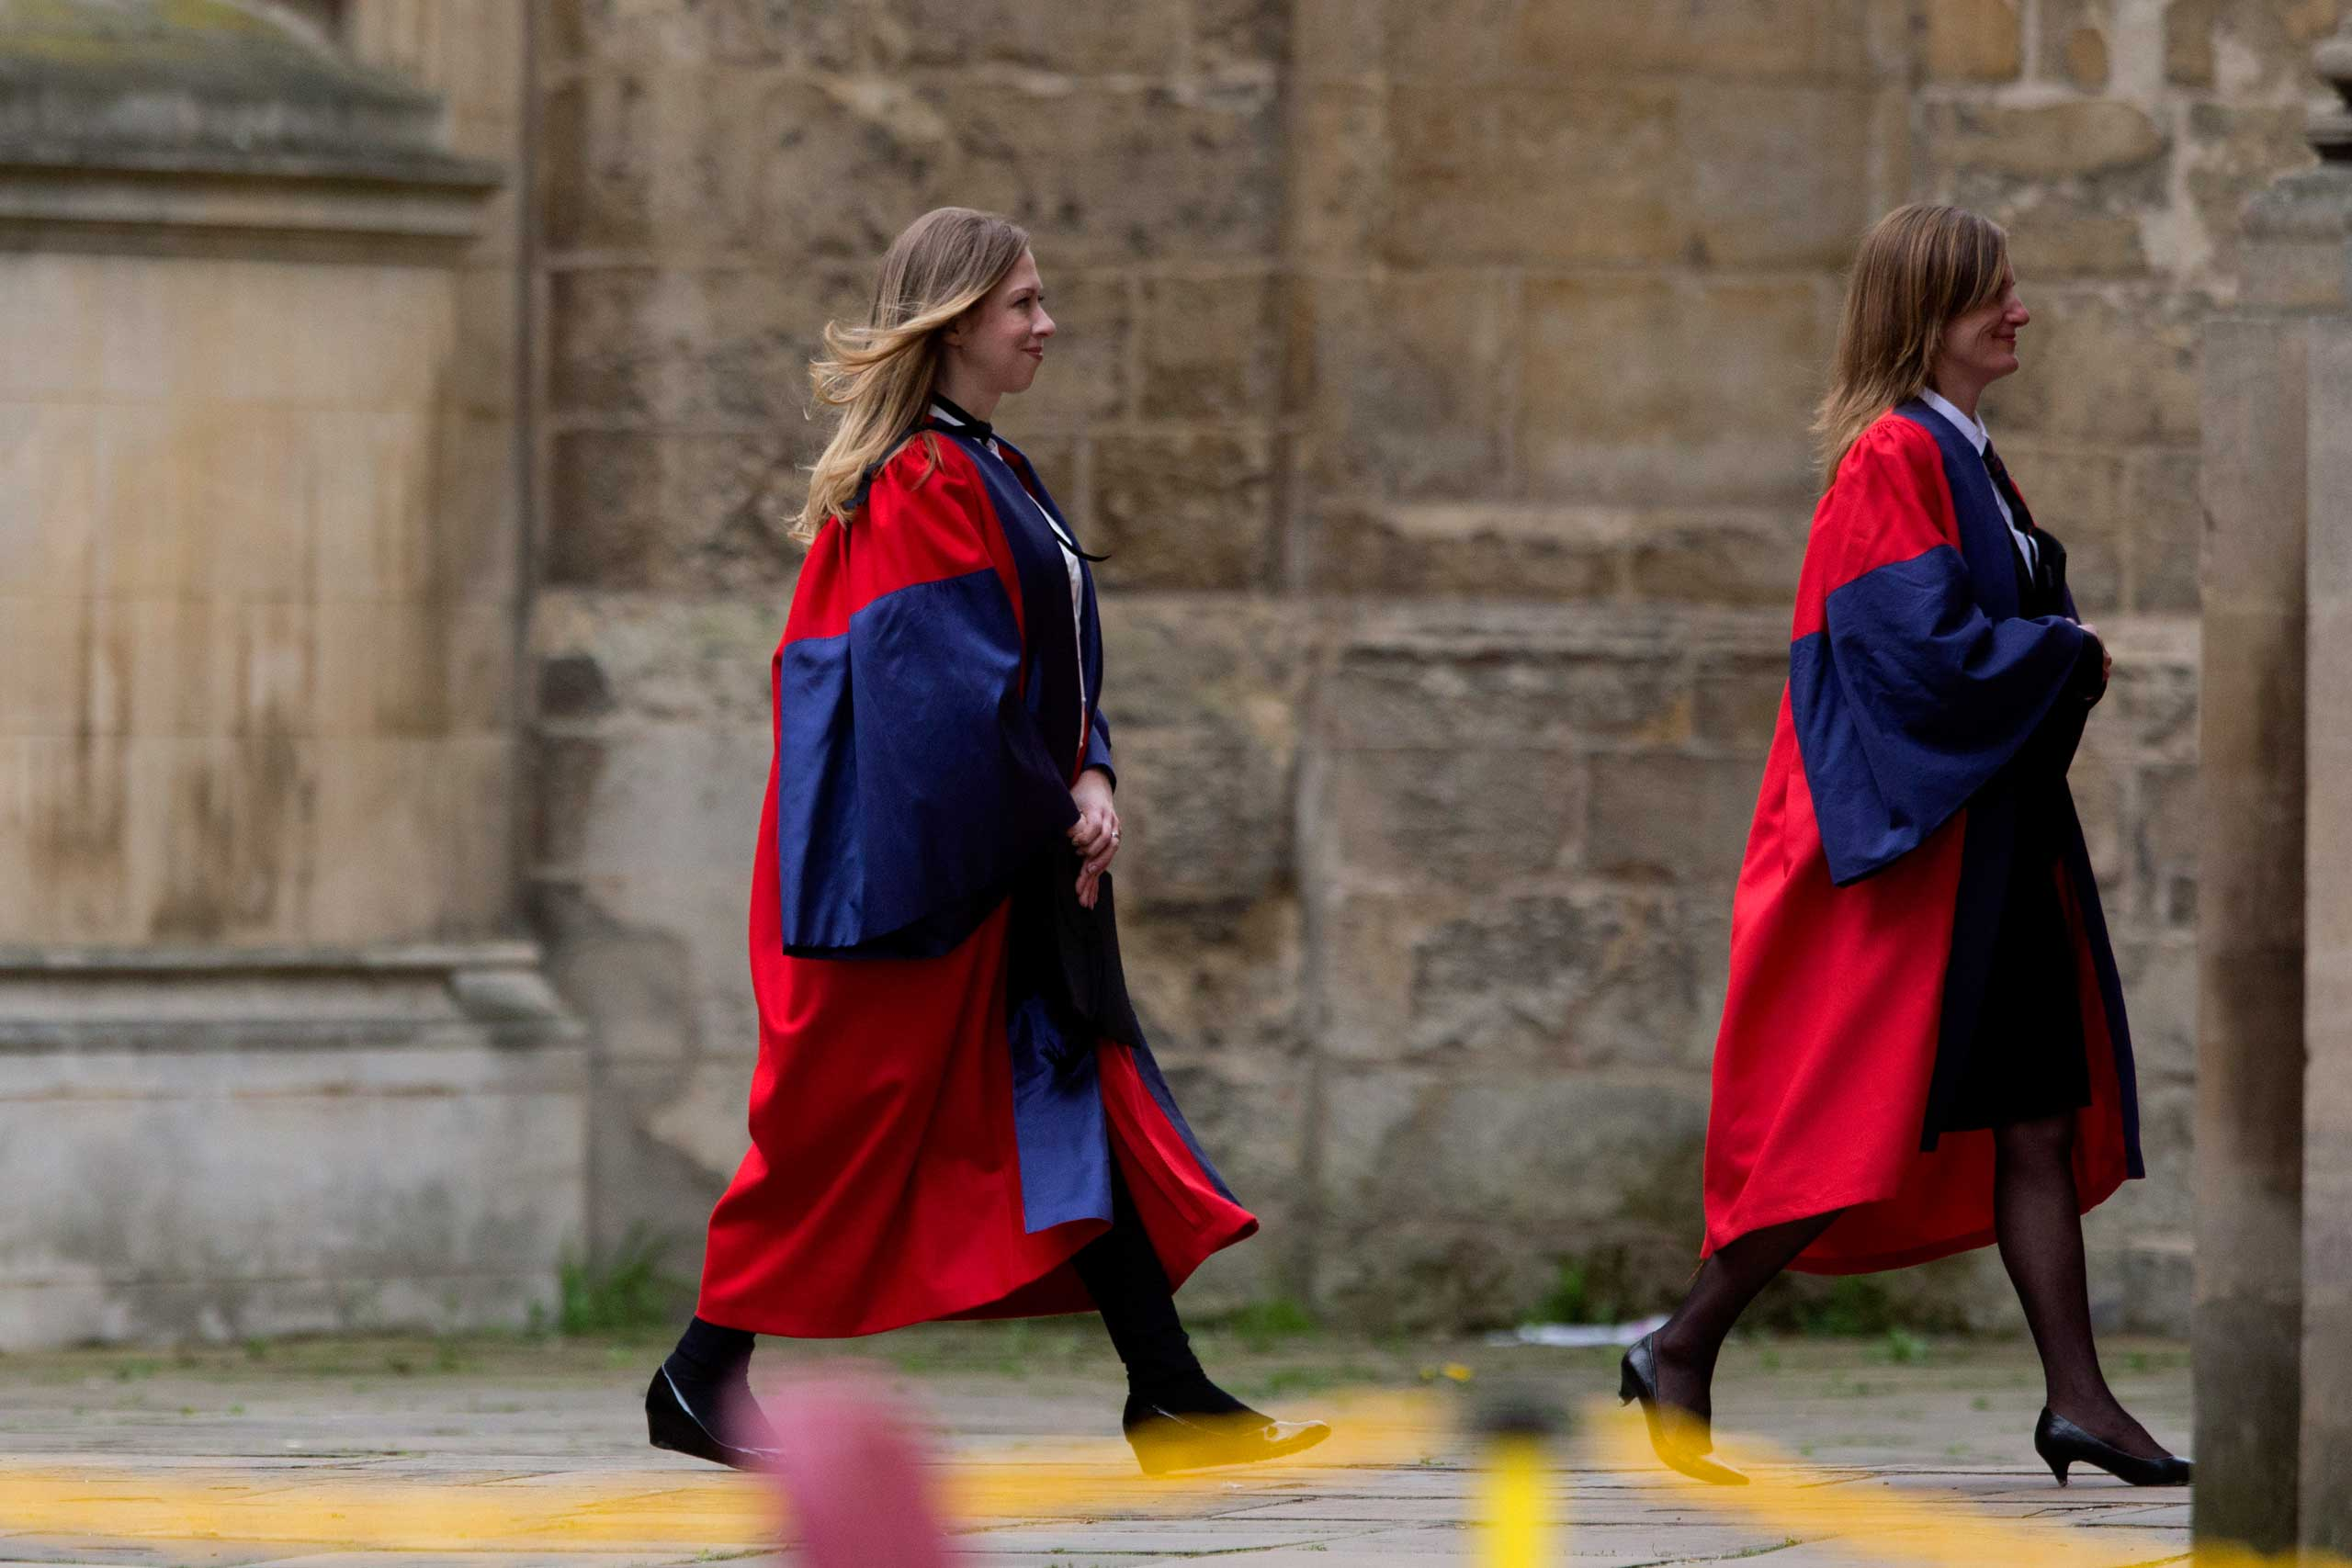 Chelsea Clinton, left, walks into her Oxford University graduation ceremony where she received her doctorate degree in international relations, at the Sheldonian Theatre in Oxford, England on May 10, 2014.